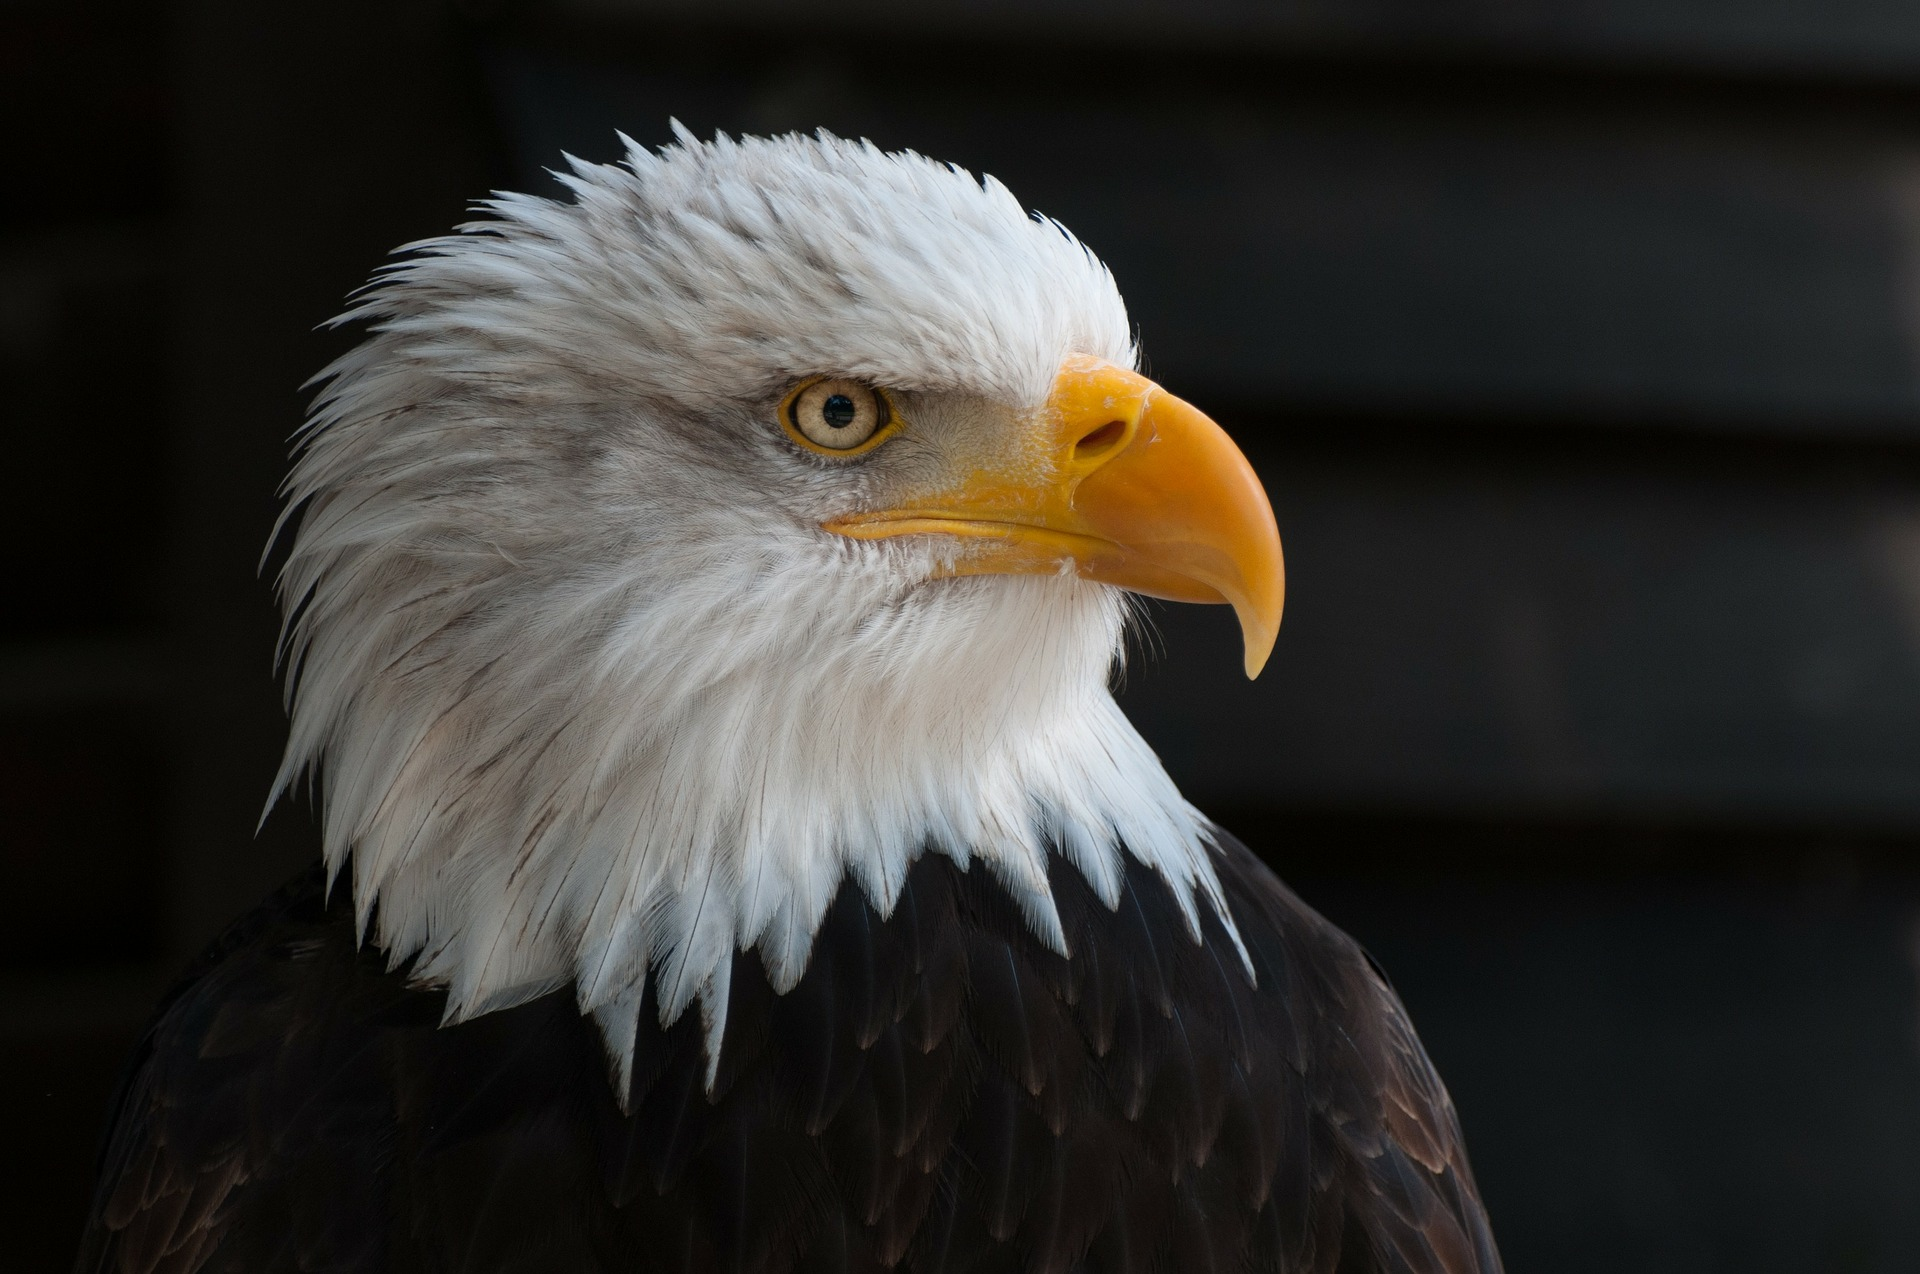 Michigan's bald eagle population is rebounding after locals' teamwork